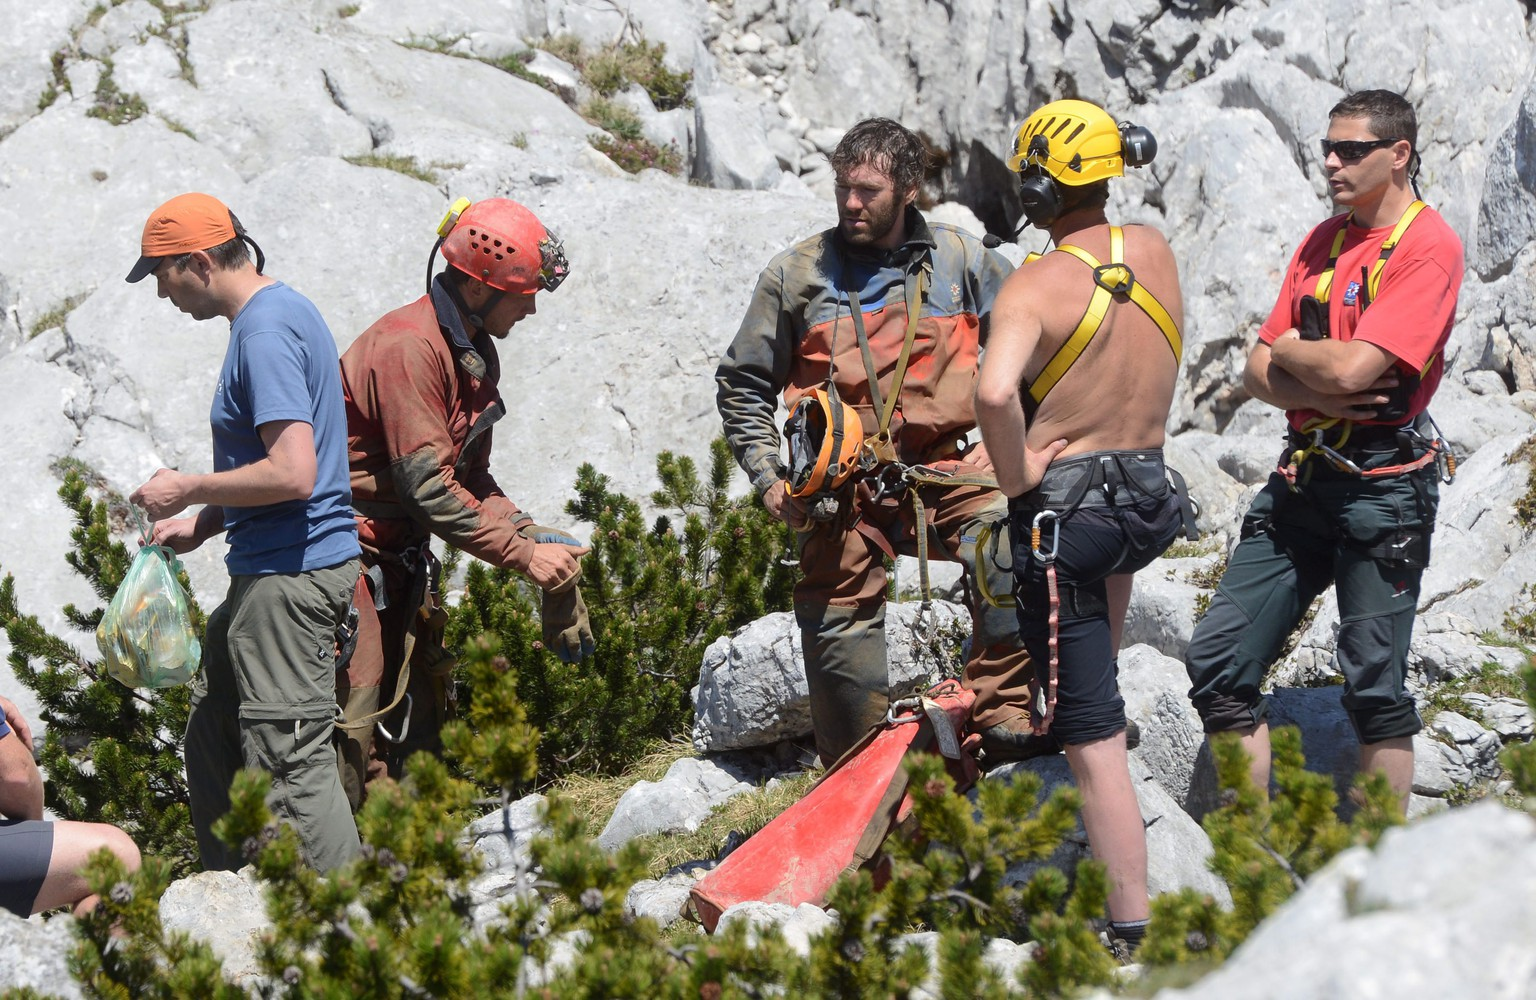 epa04249643 Two German cave rescuers (2-L and 3-L) talk to each other after a rescue mission inside Riesending-Schachthoehle cave at Untersberg mountain near Marktschellenberg, Germany, 11 June 2014. Teams from Italy have arrived to help prepare the shaft for the rescue, after an injured German spelunker had been severly injured and trapped nearly a kilometer below ground since a rockslide two days earlier. The man was with two companions when the rockslide struck early in the Riesending, which translates to Big Thing and is Germany's deepest cave. His companions escaped without significant injury.  EPA/TOBIAS HASE